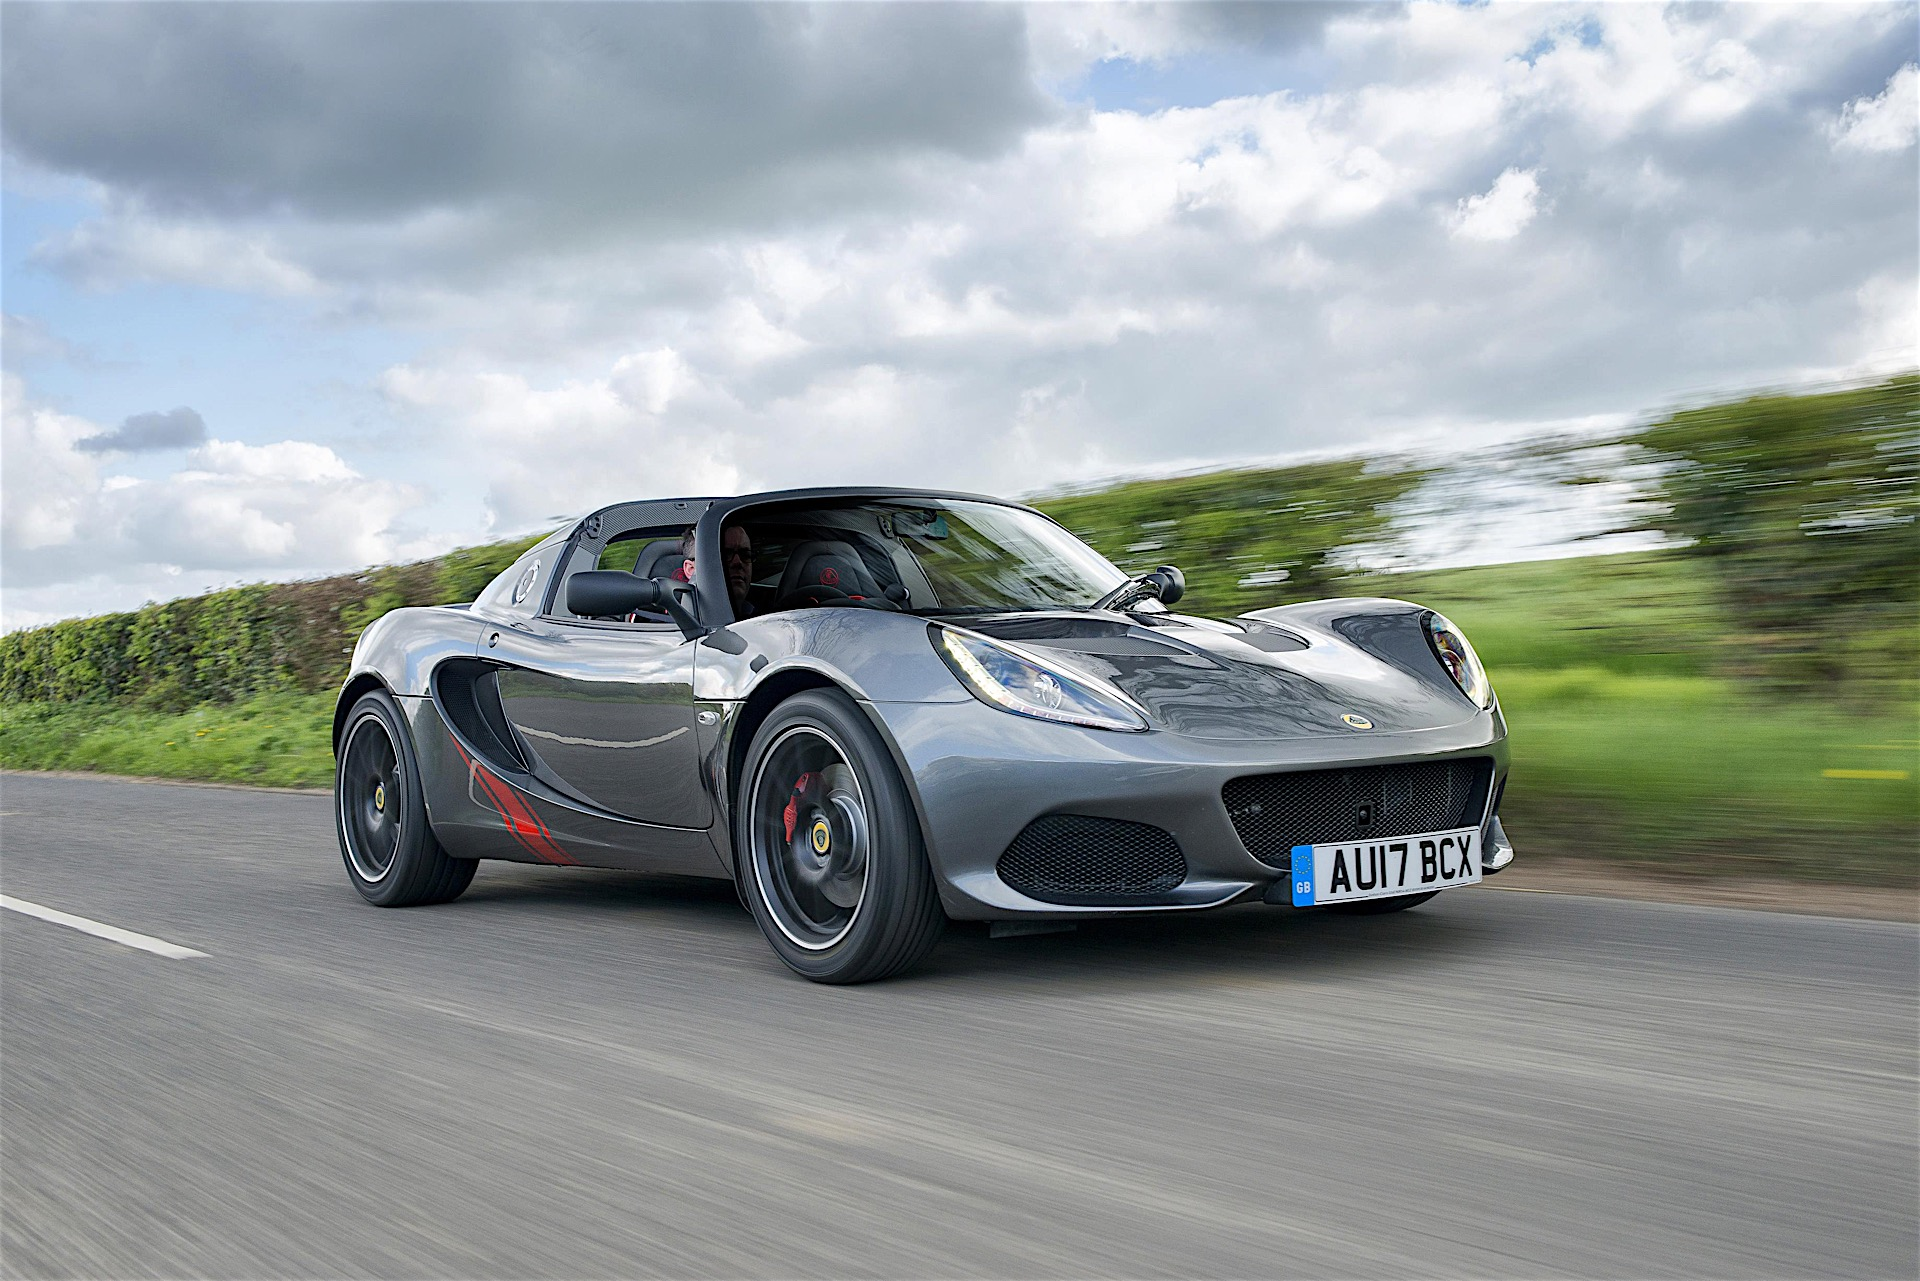 lotus elise named slowest depreciating performance car autoevolution. Black Bedroom Furniture Sets. Home Design Ideas